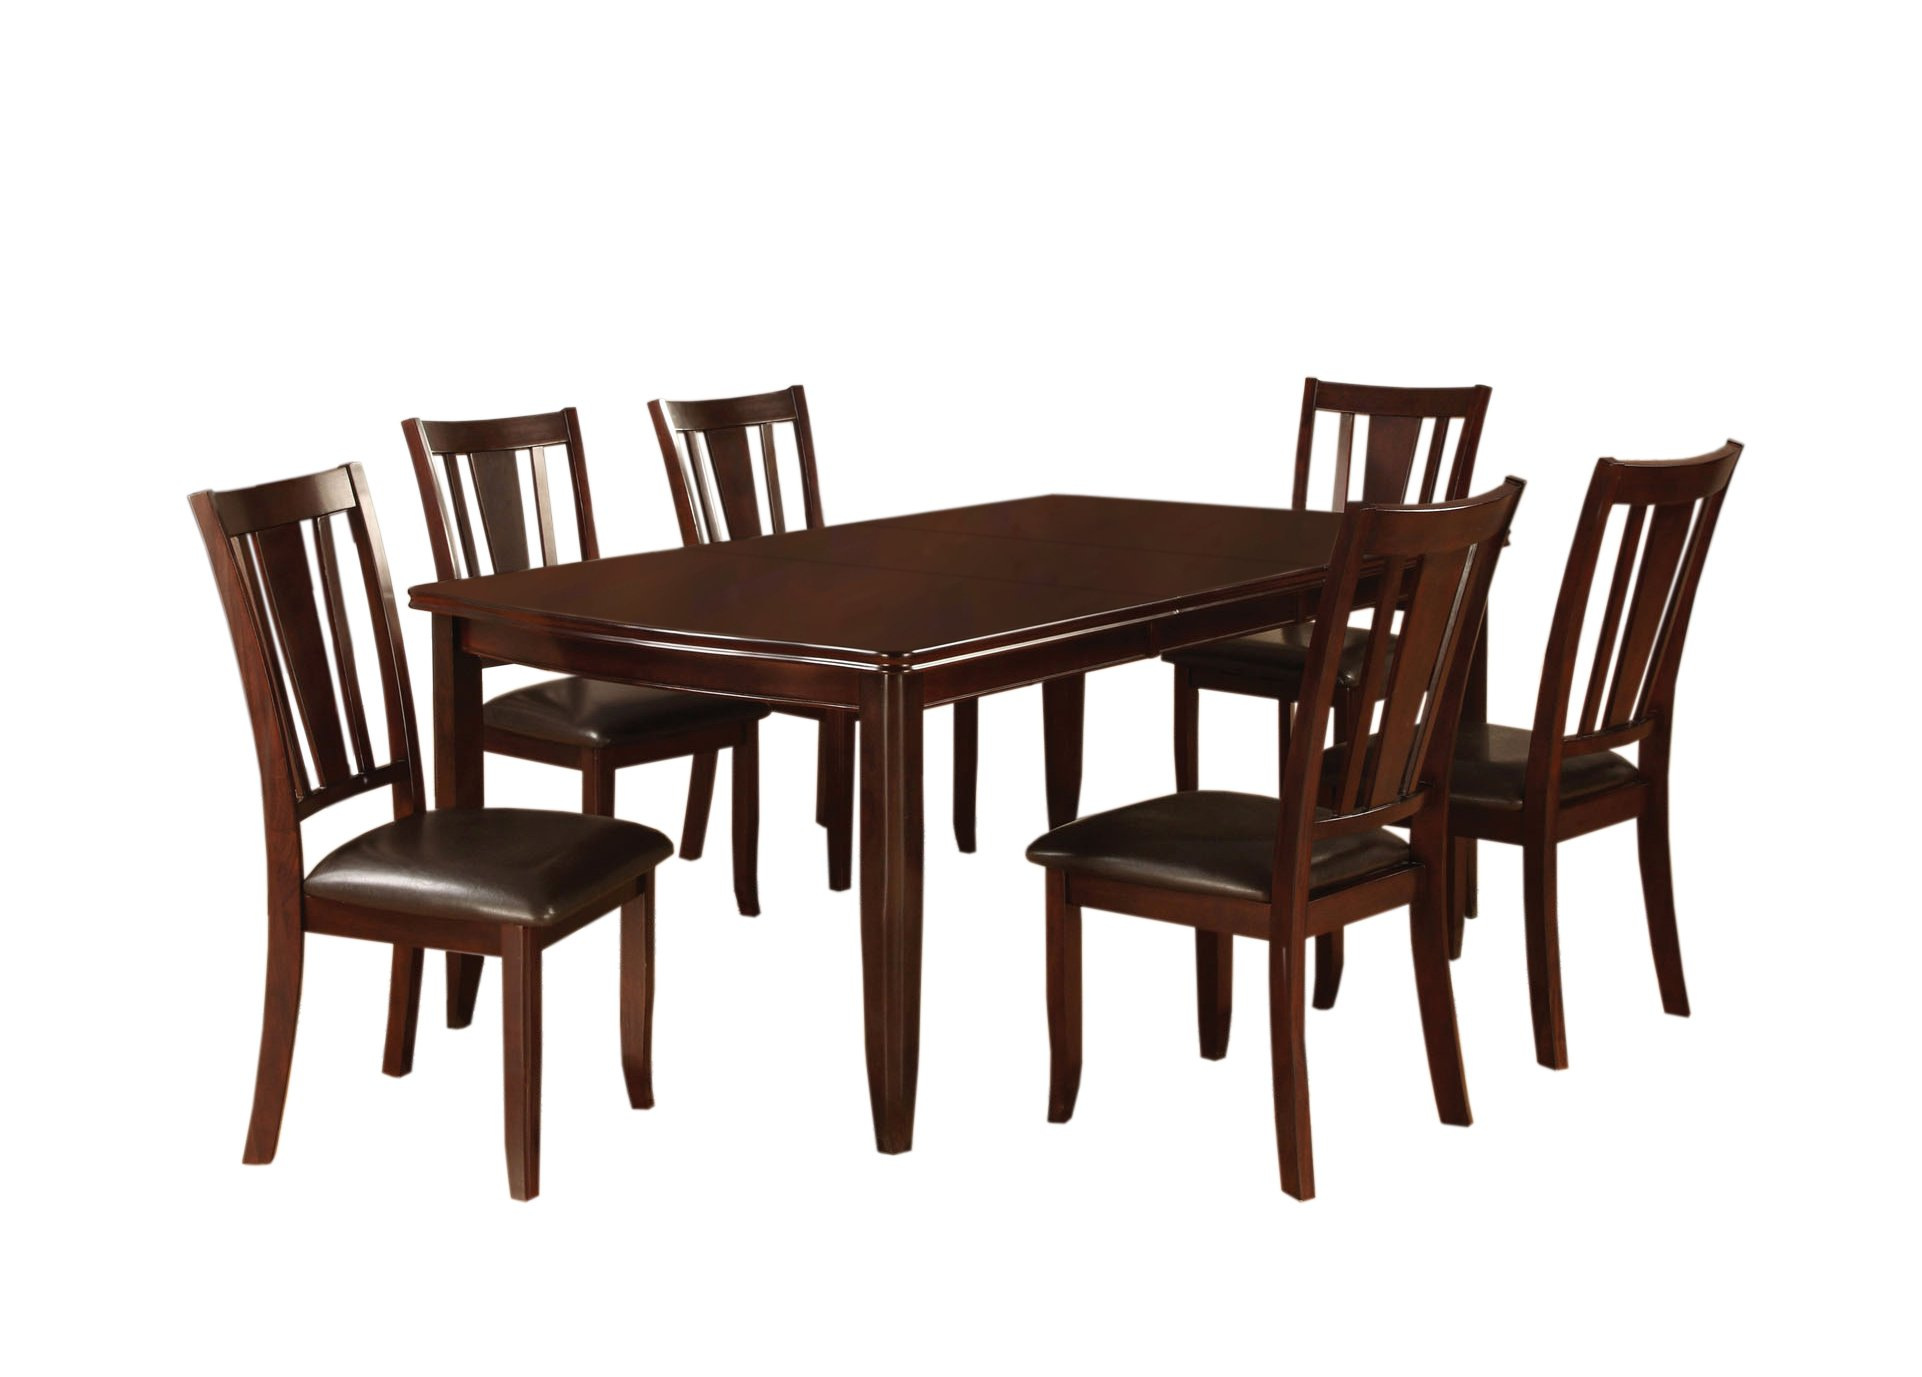 Furniture of America Anlow 7-Piece Dining Table Set with 18-Inch Expandable Leaf, Espresso by Furniture of America (Image #1)